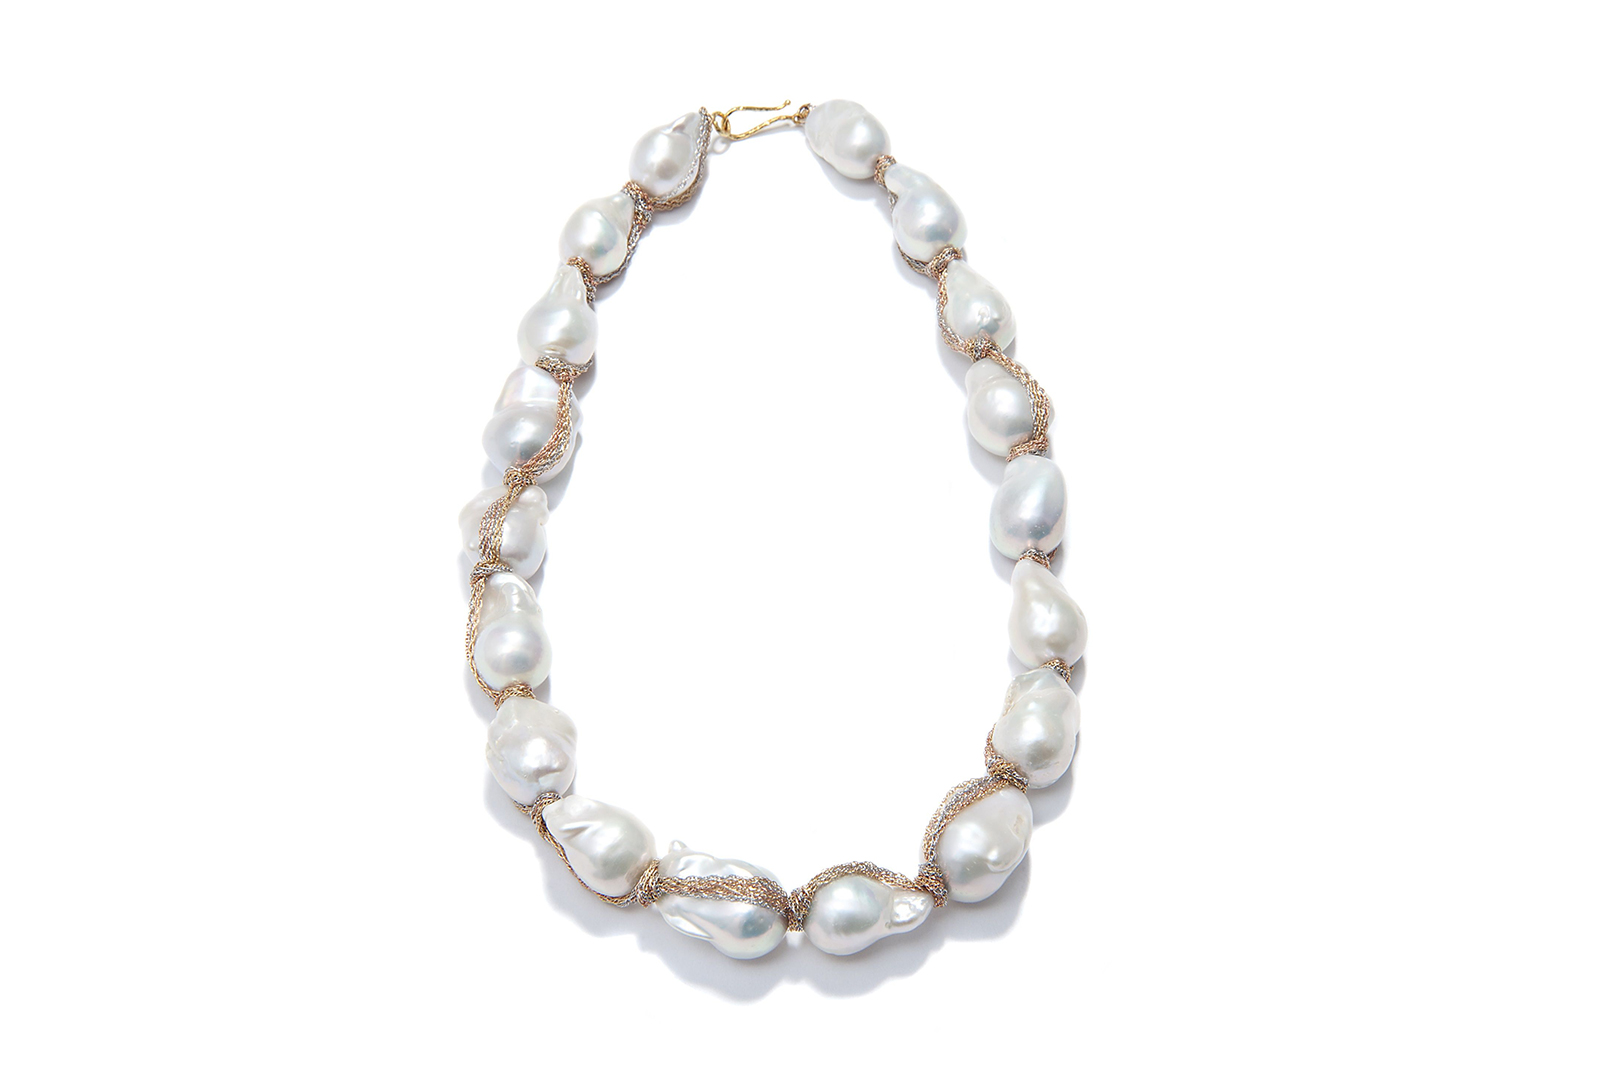 Trend: Unusual pearl jewellery designs featuring a variety